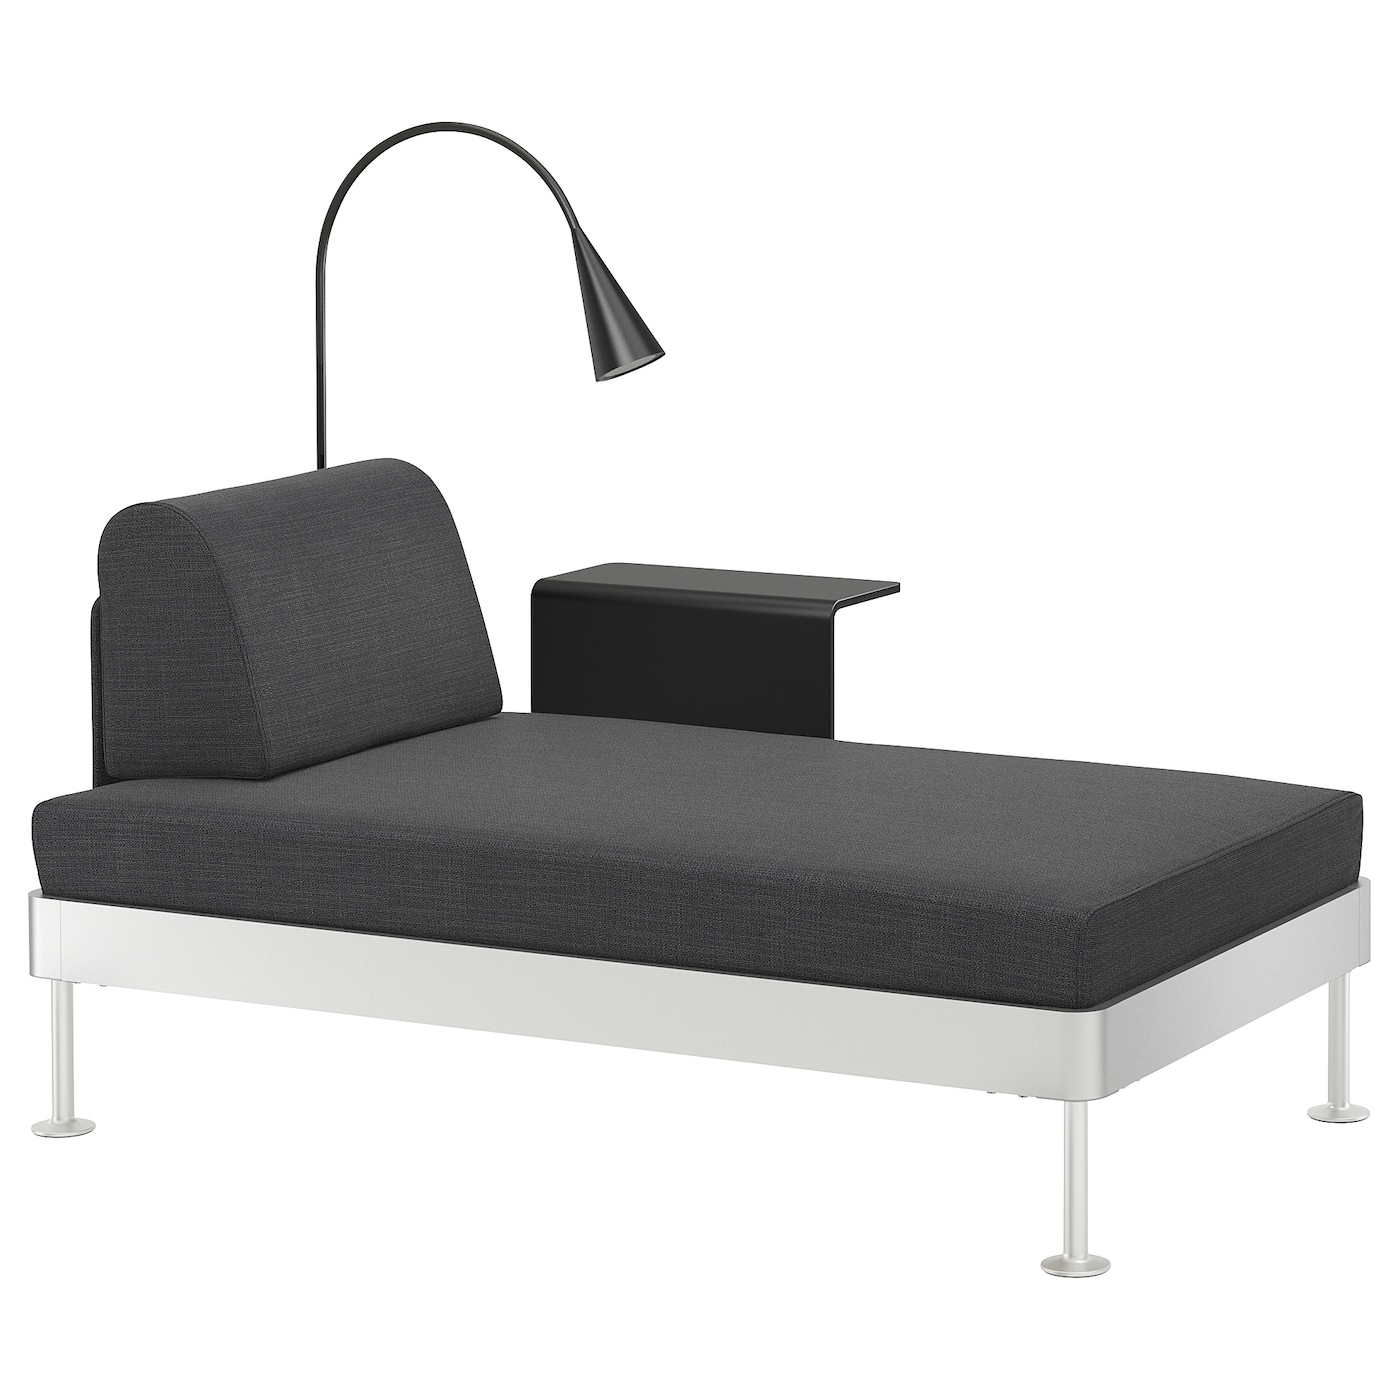 chaise lounges ikea. Black Bedroom Furniture Sets. Home Design Ideas